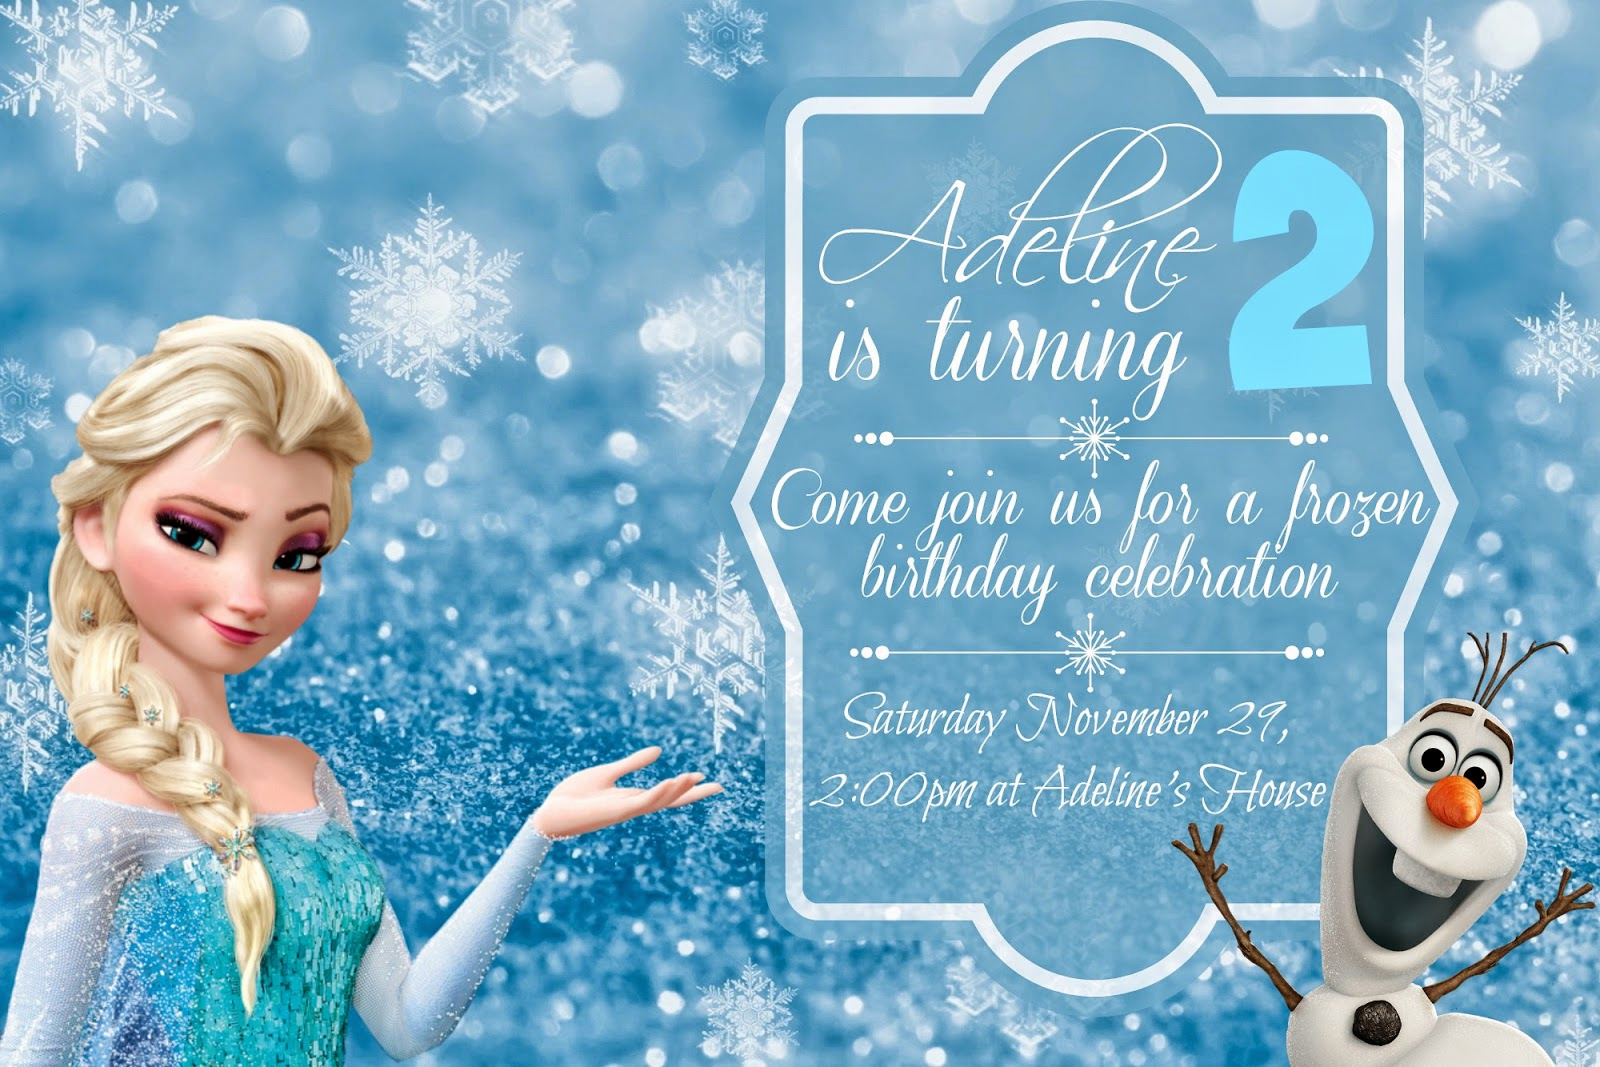 Frozen Birthday Invitation Templates Best Of orchard Girls Free Frozen Birthday Party Invitations and